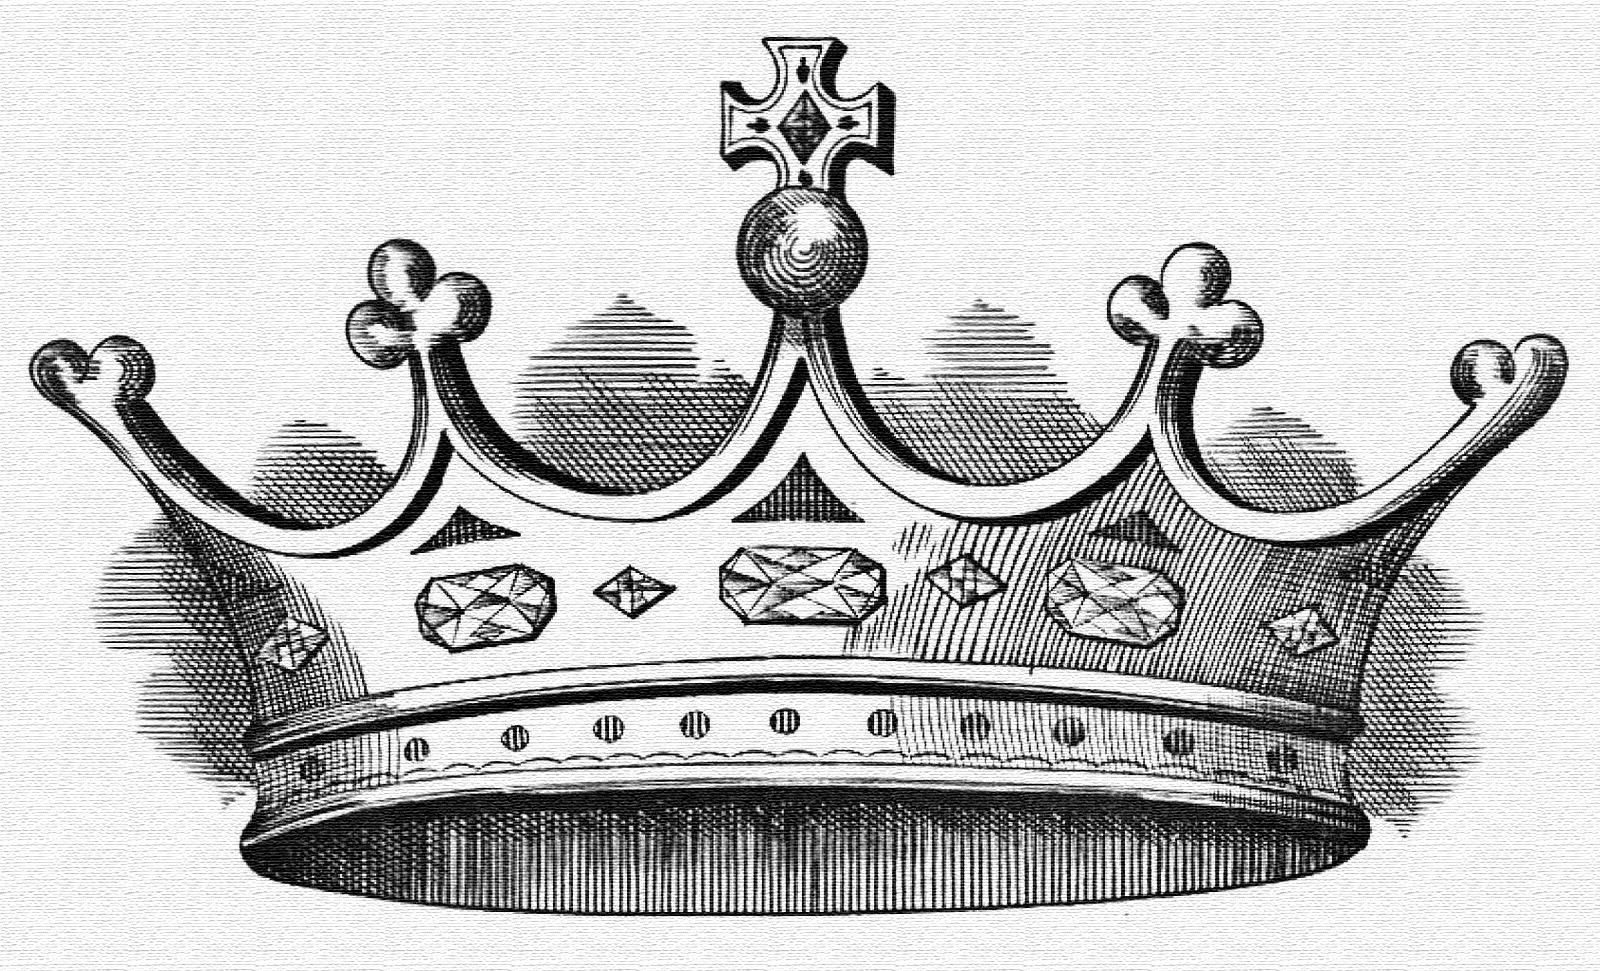 King for the day crown clipart picture freeuse download King for the day crown clipart - ClipartFest picture freeuse download